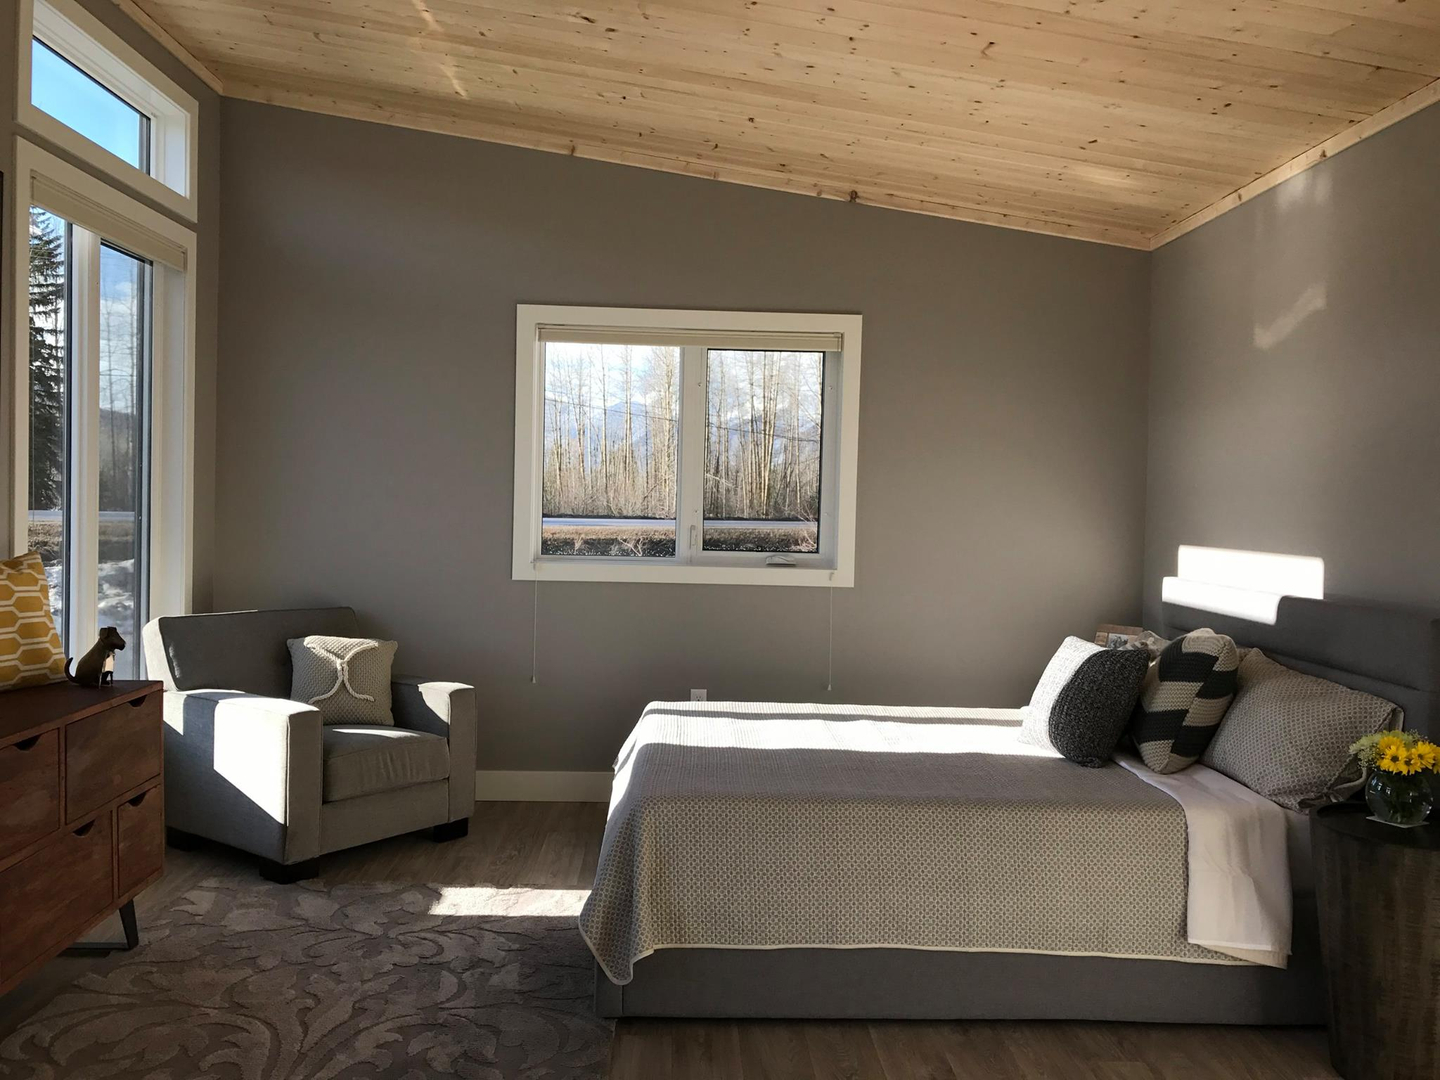 modern mountain modular style has been designed by cinch homes to offer a high end modern home at an attainable price offering the benefits of modular with fixed cost